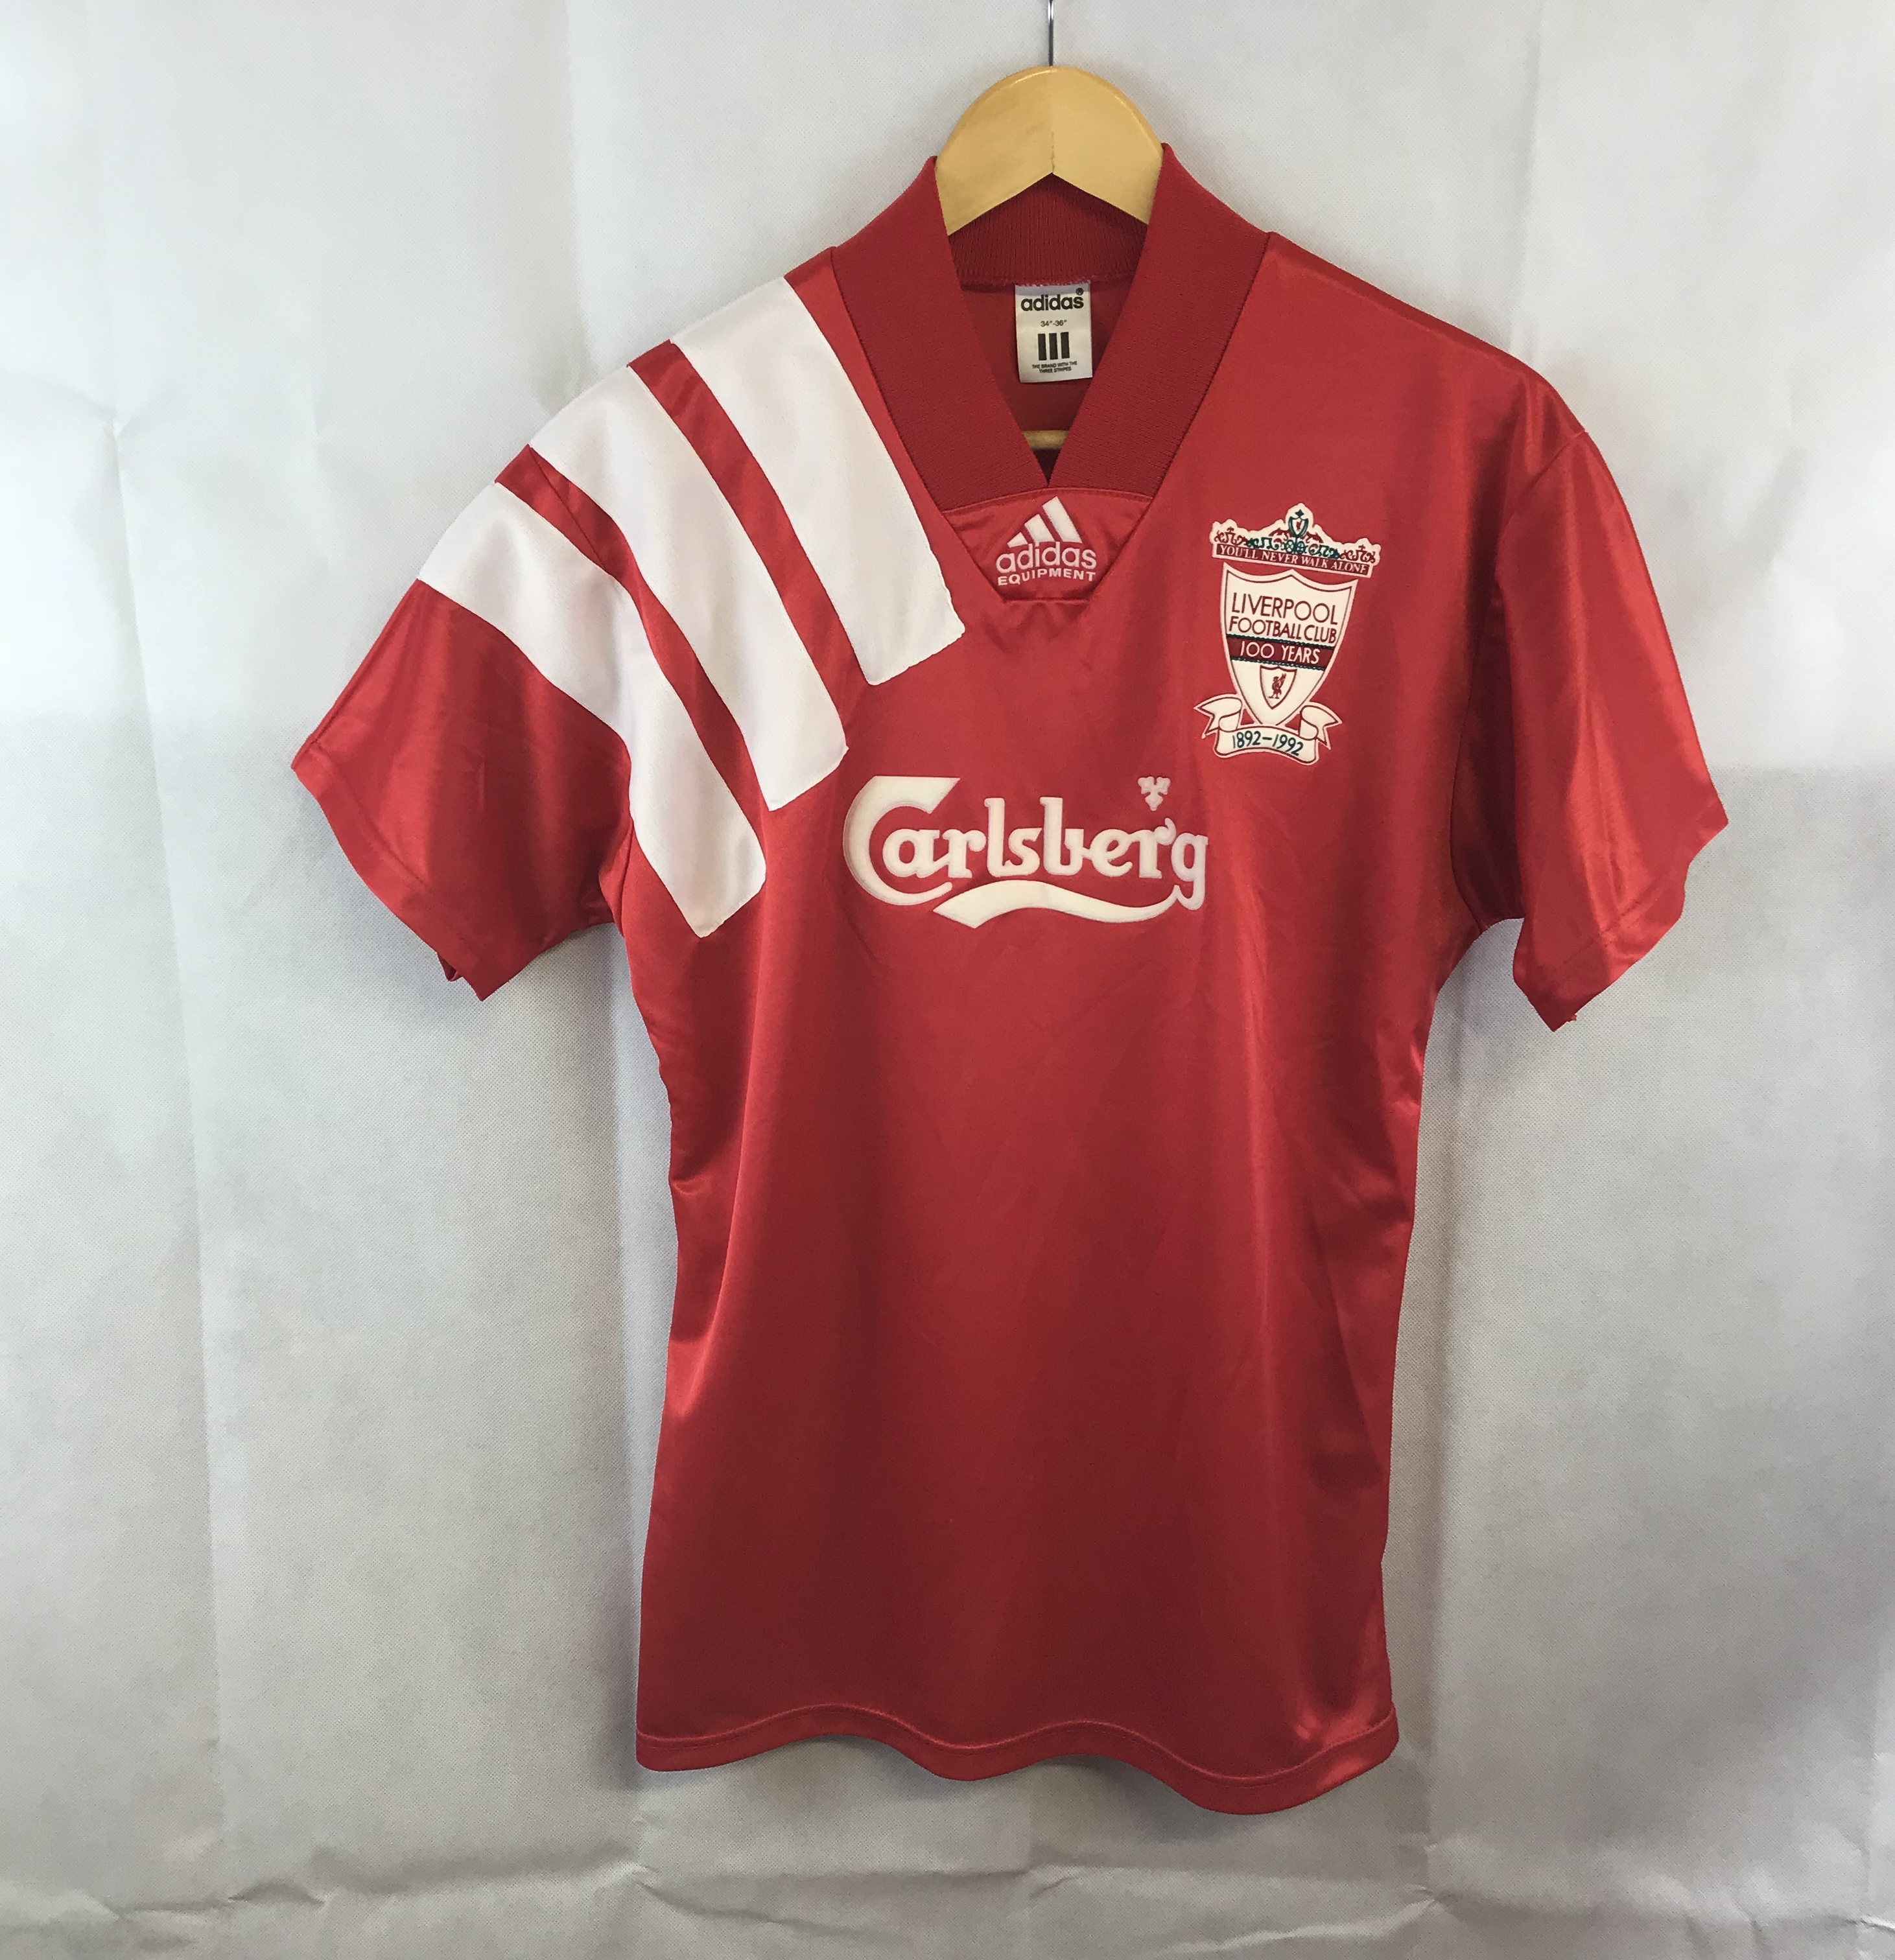 a0967fb94 Liverpool Centenary Home Football Shirt 1992 93 Adults Small Adidas. 🔍.  instock